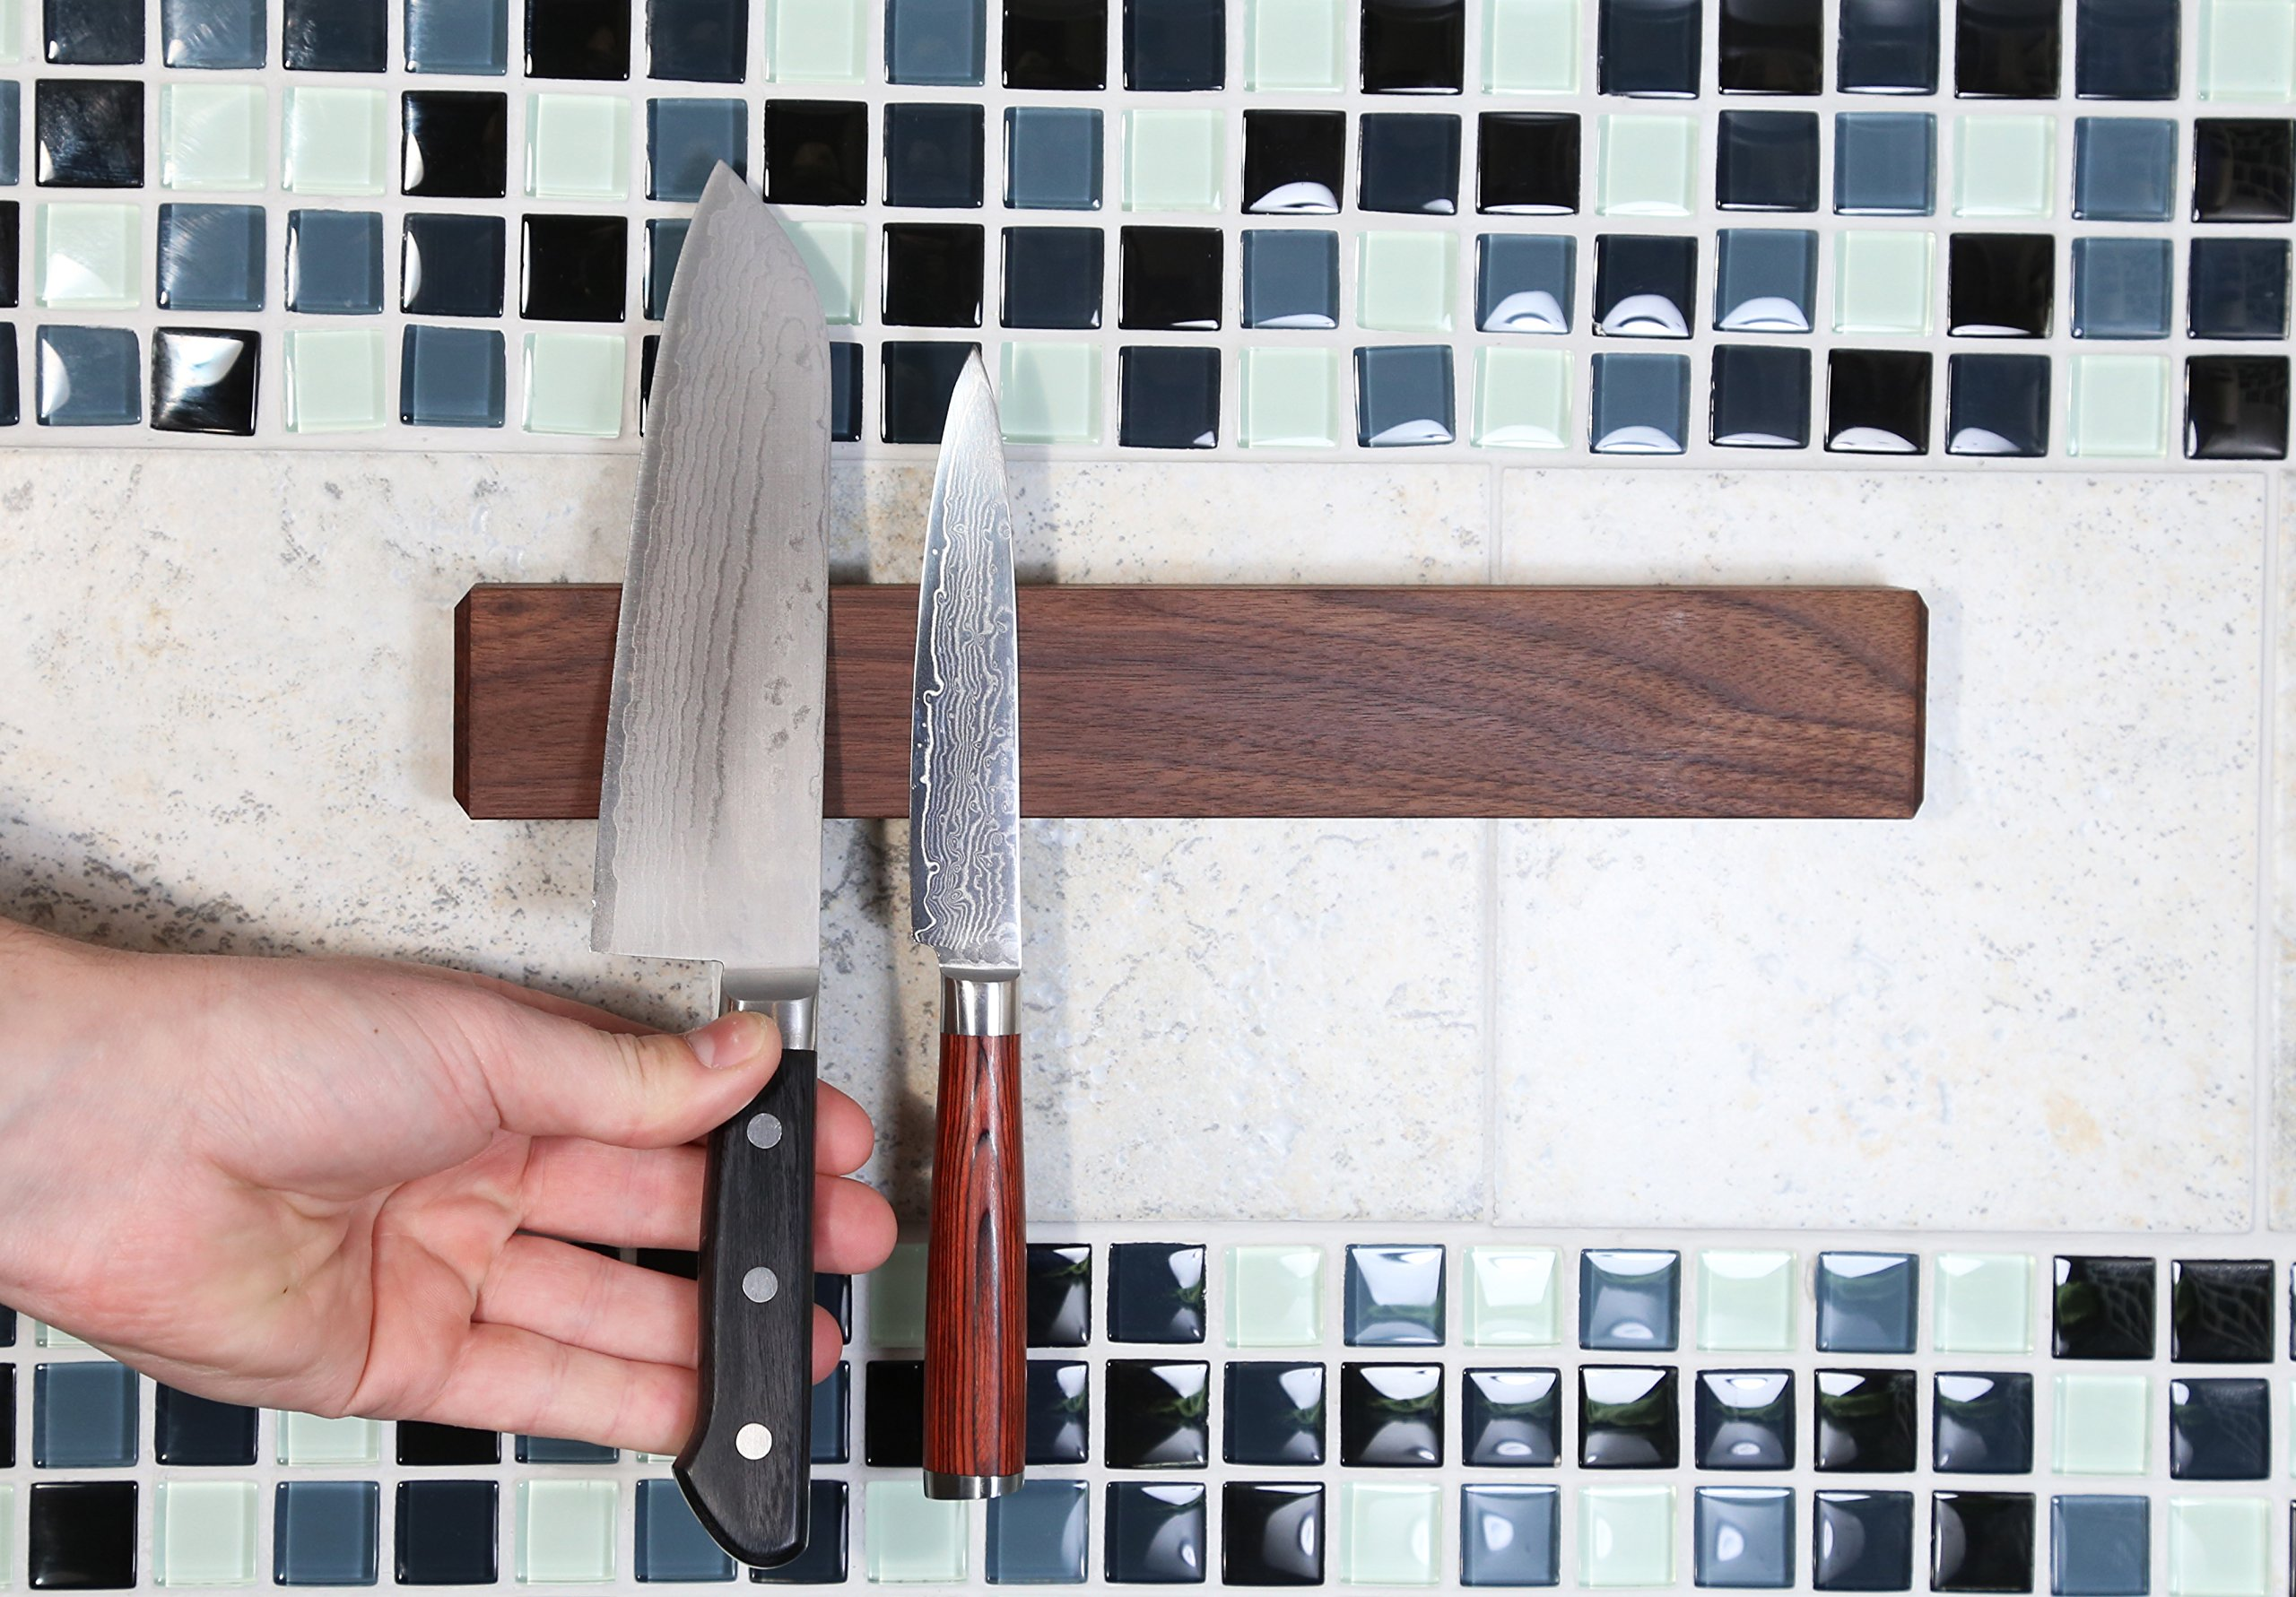 Walnut Magnetic Knife Holder with Multi Purpose Functionality as Knife Magnet, Knife Strip, Magnetic Organizer- Securely Holds Your Knives & Keeps Your Kitchen Organized- Made in USA- 12 Inch by Kurouto Kitchenware (Image #4)